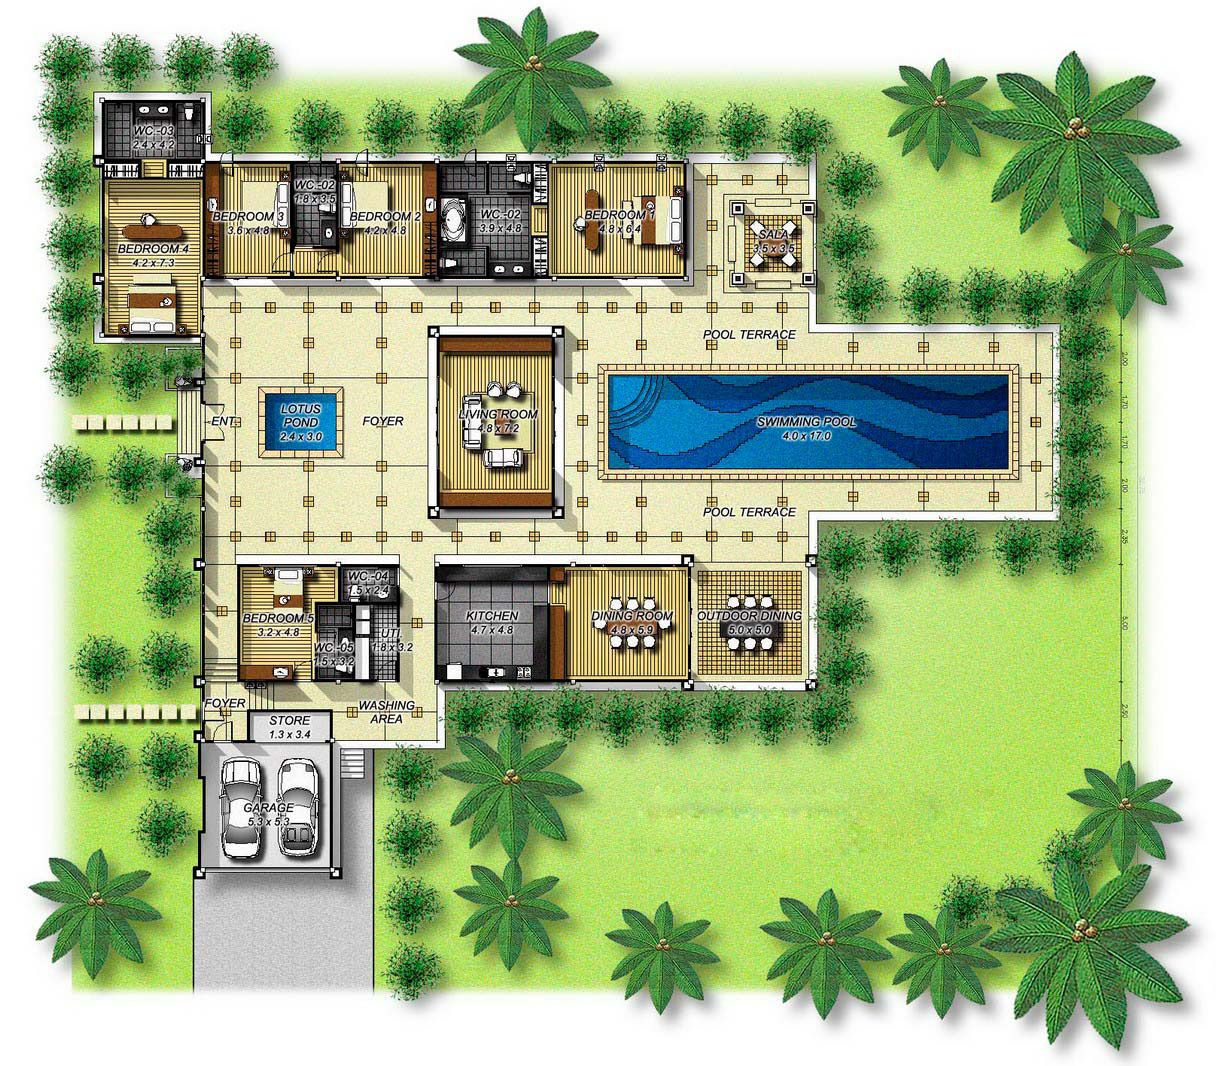 House plans with courtyards in the center central for Best site for house plans